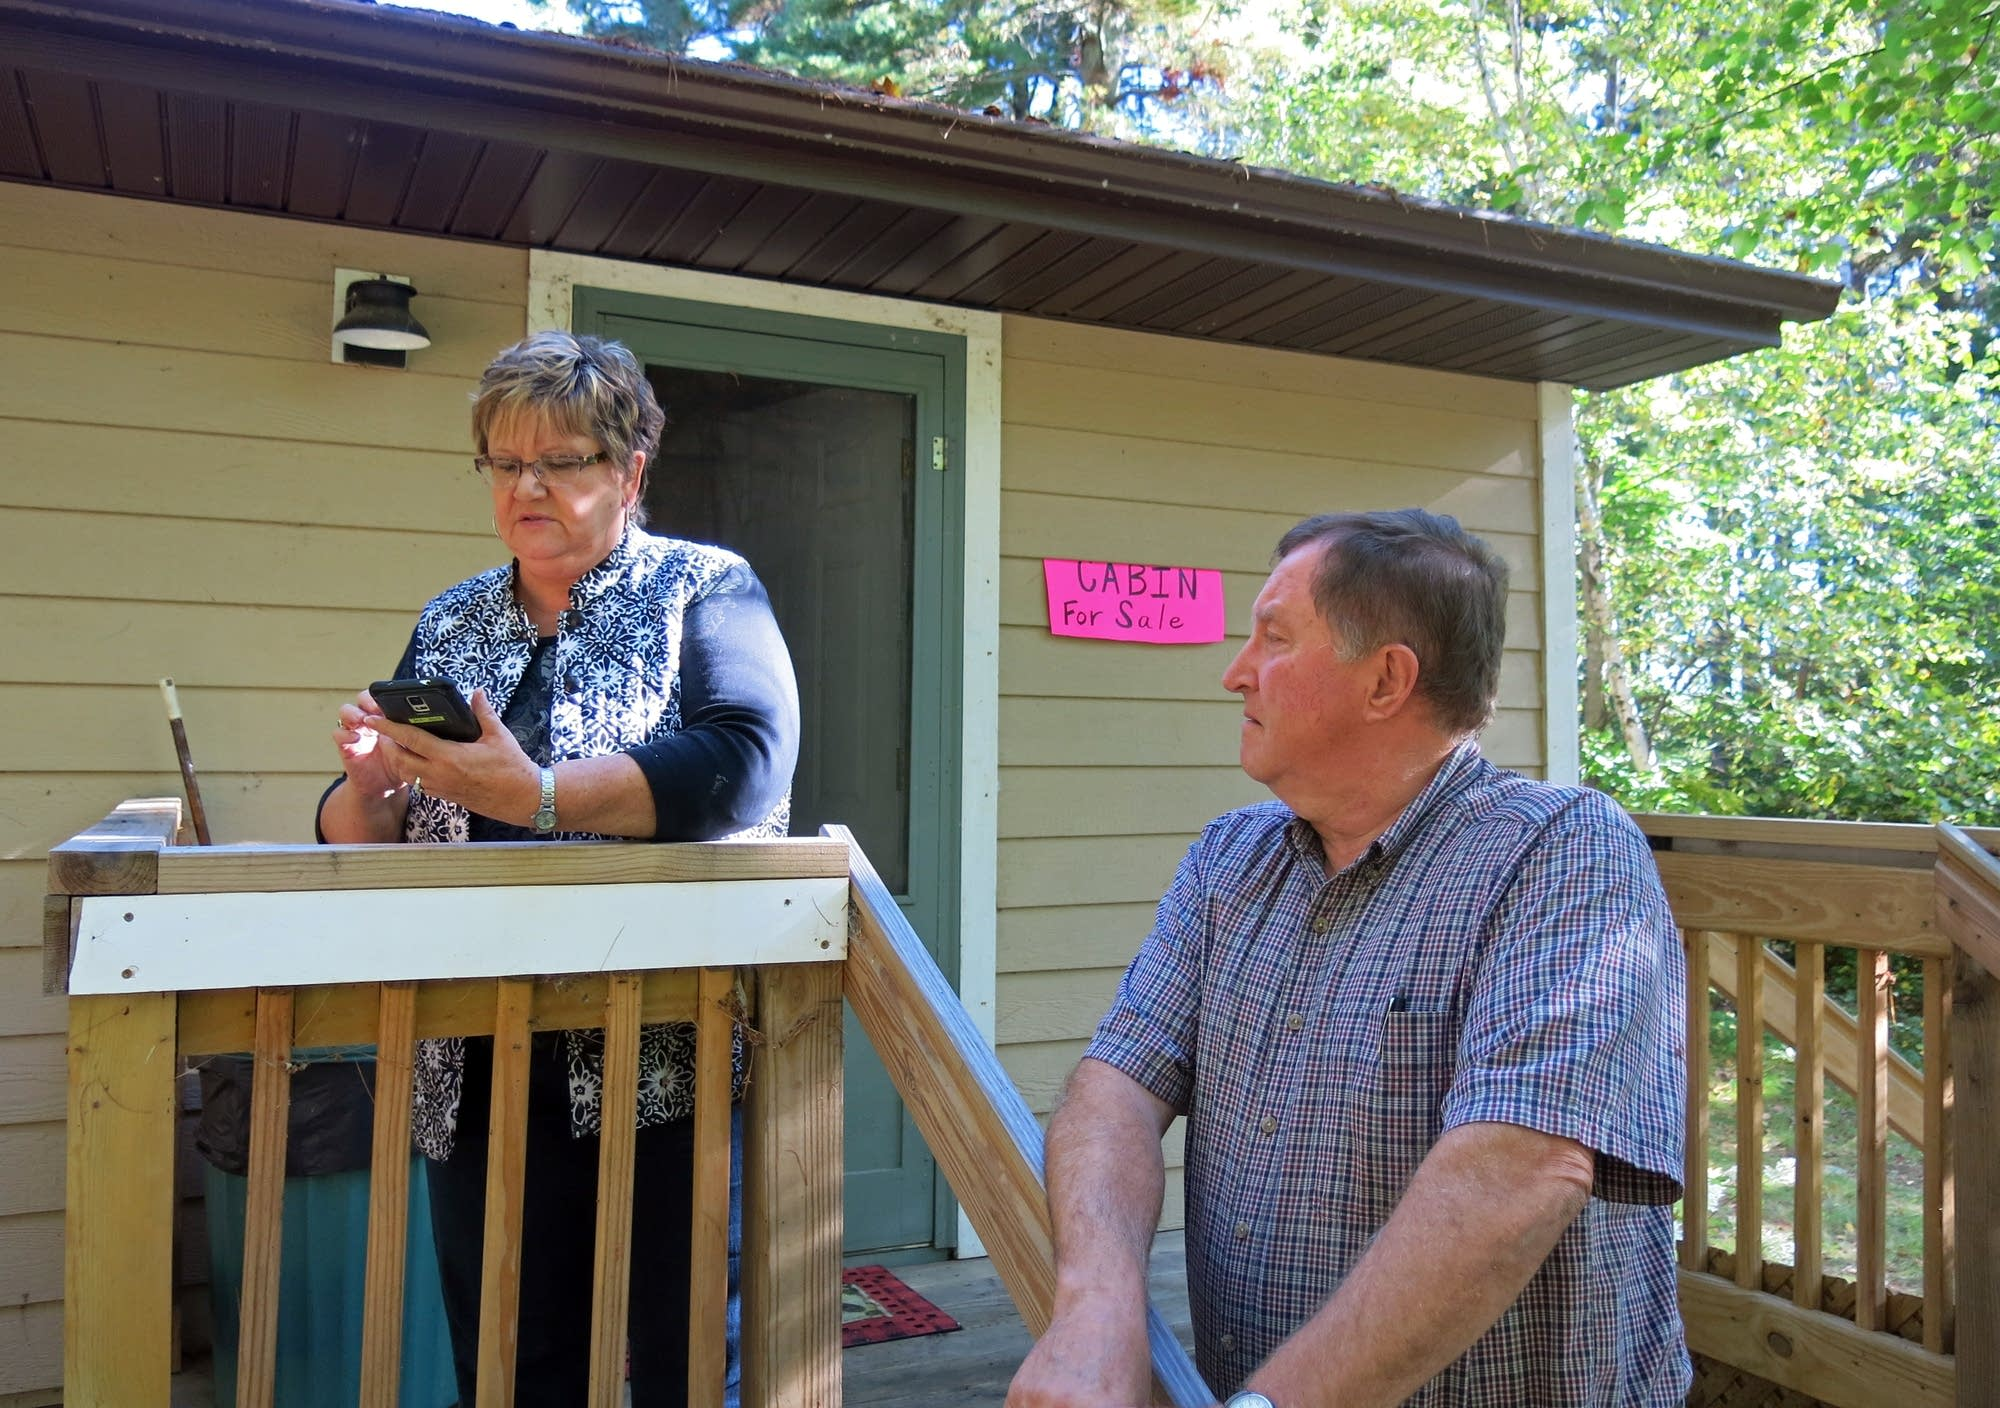 Jim and Gail Hinkemeyer will have to move or sell their family cabin.